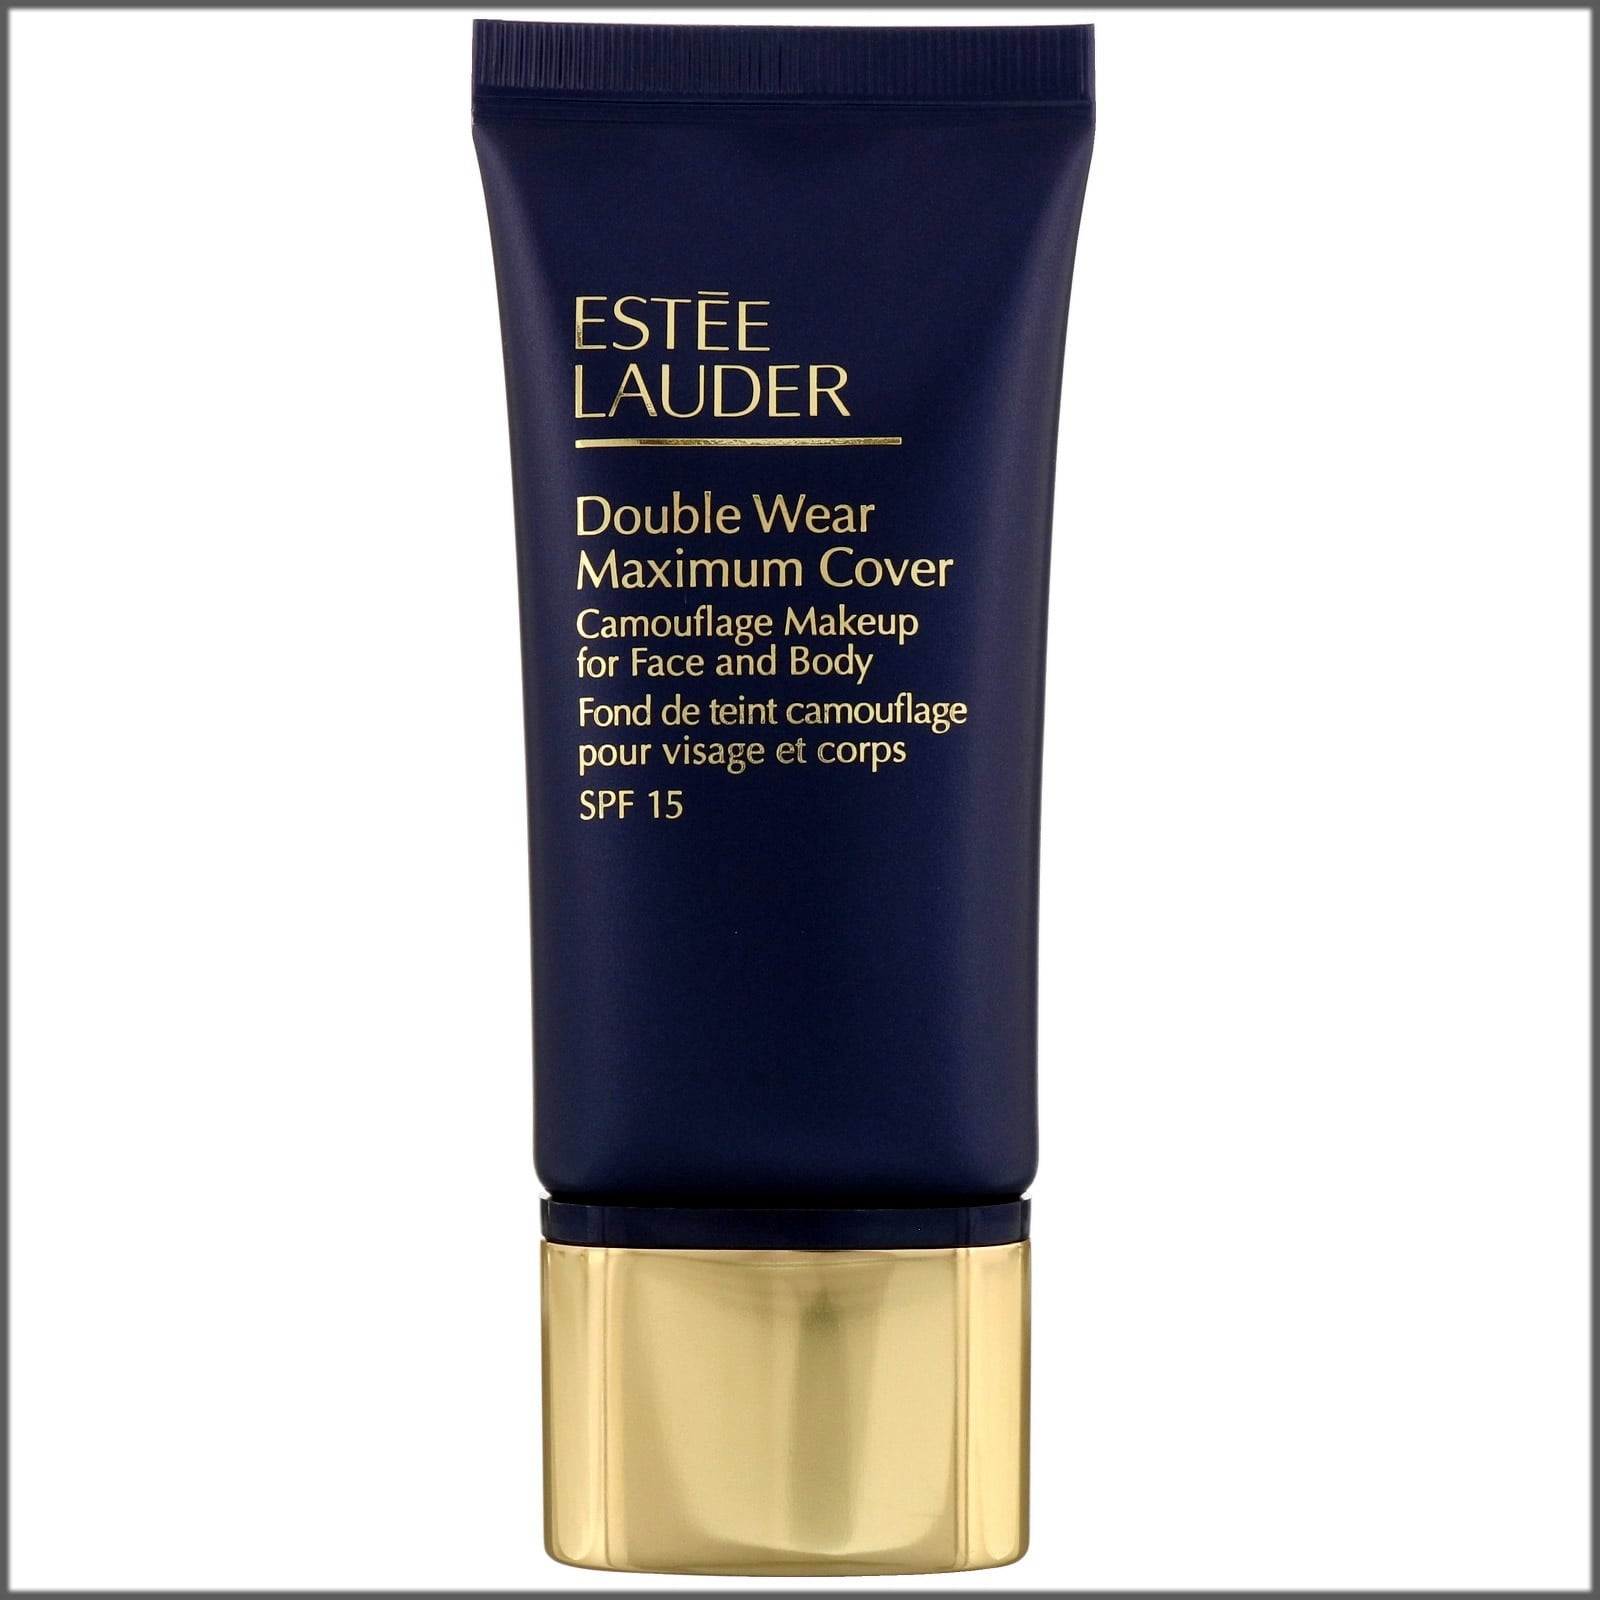 Best and famous concealer by estee lauder